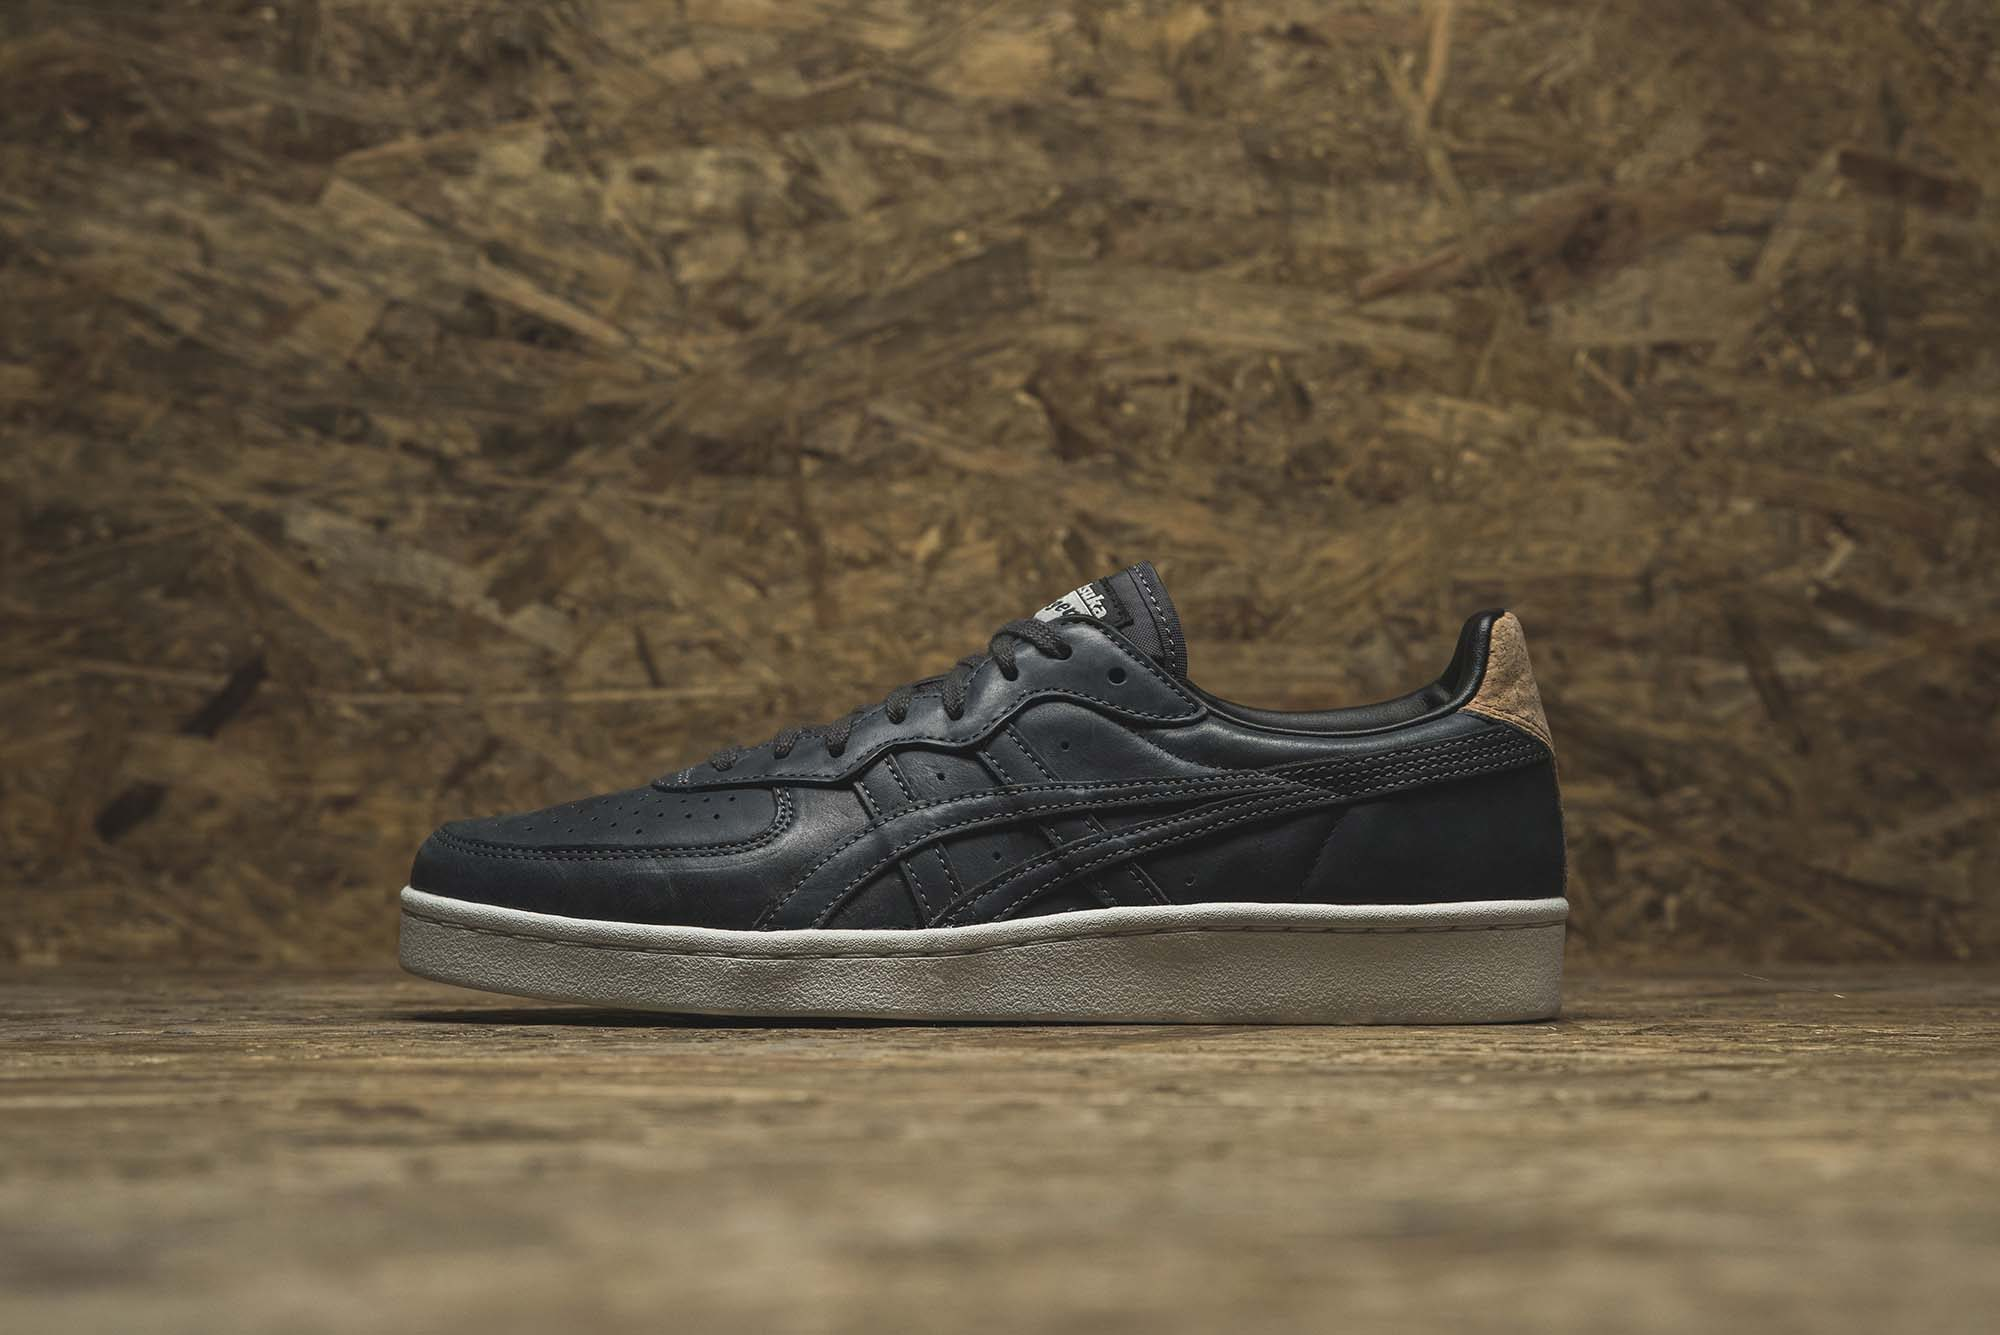 onitsuka-tiger-release-new-tiger-mhs-and-saga-series-01